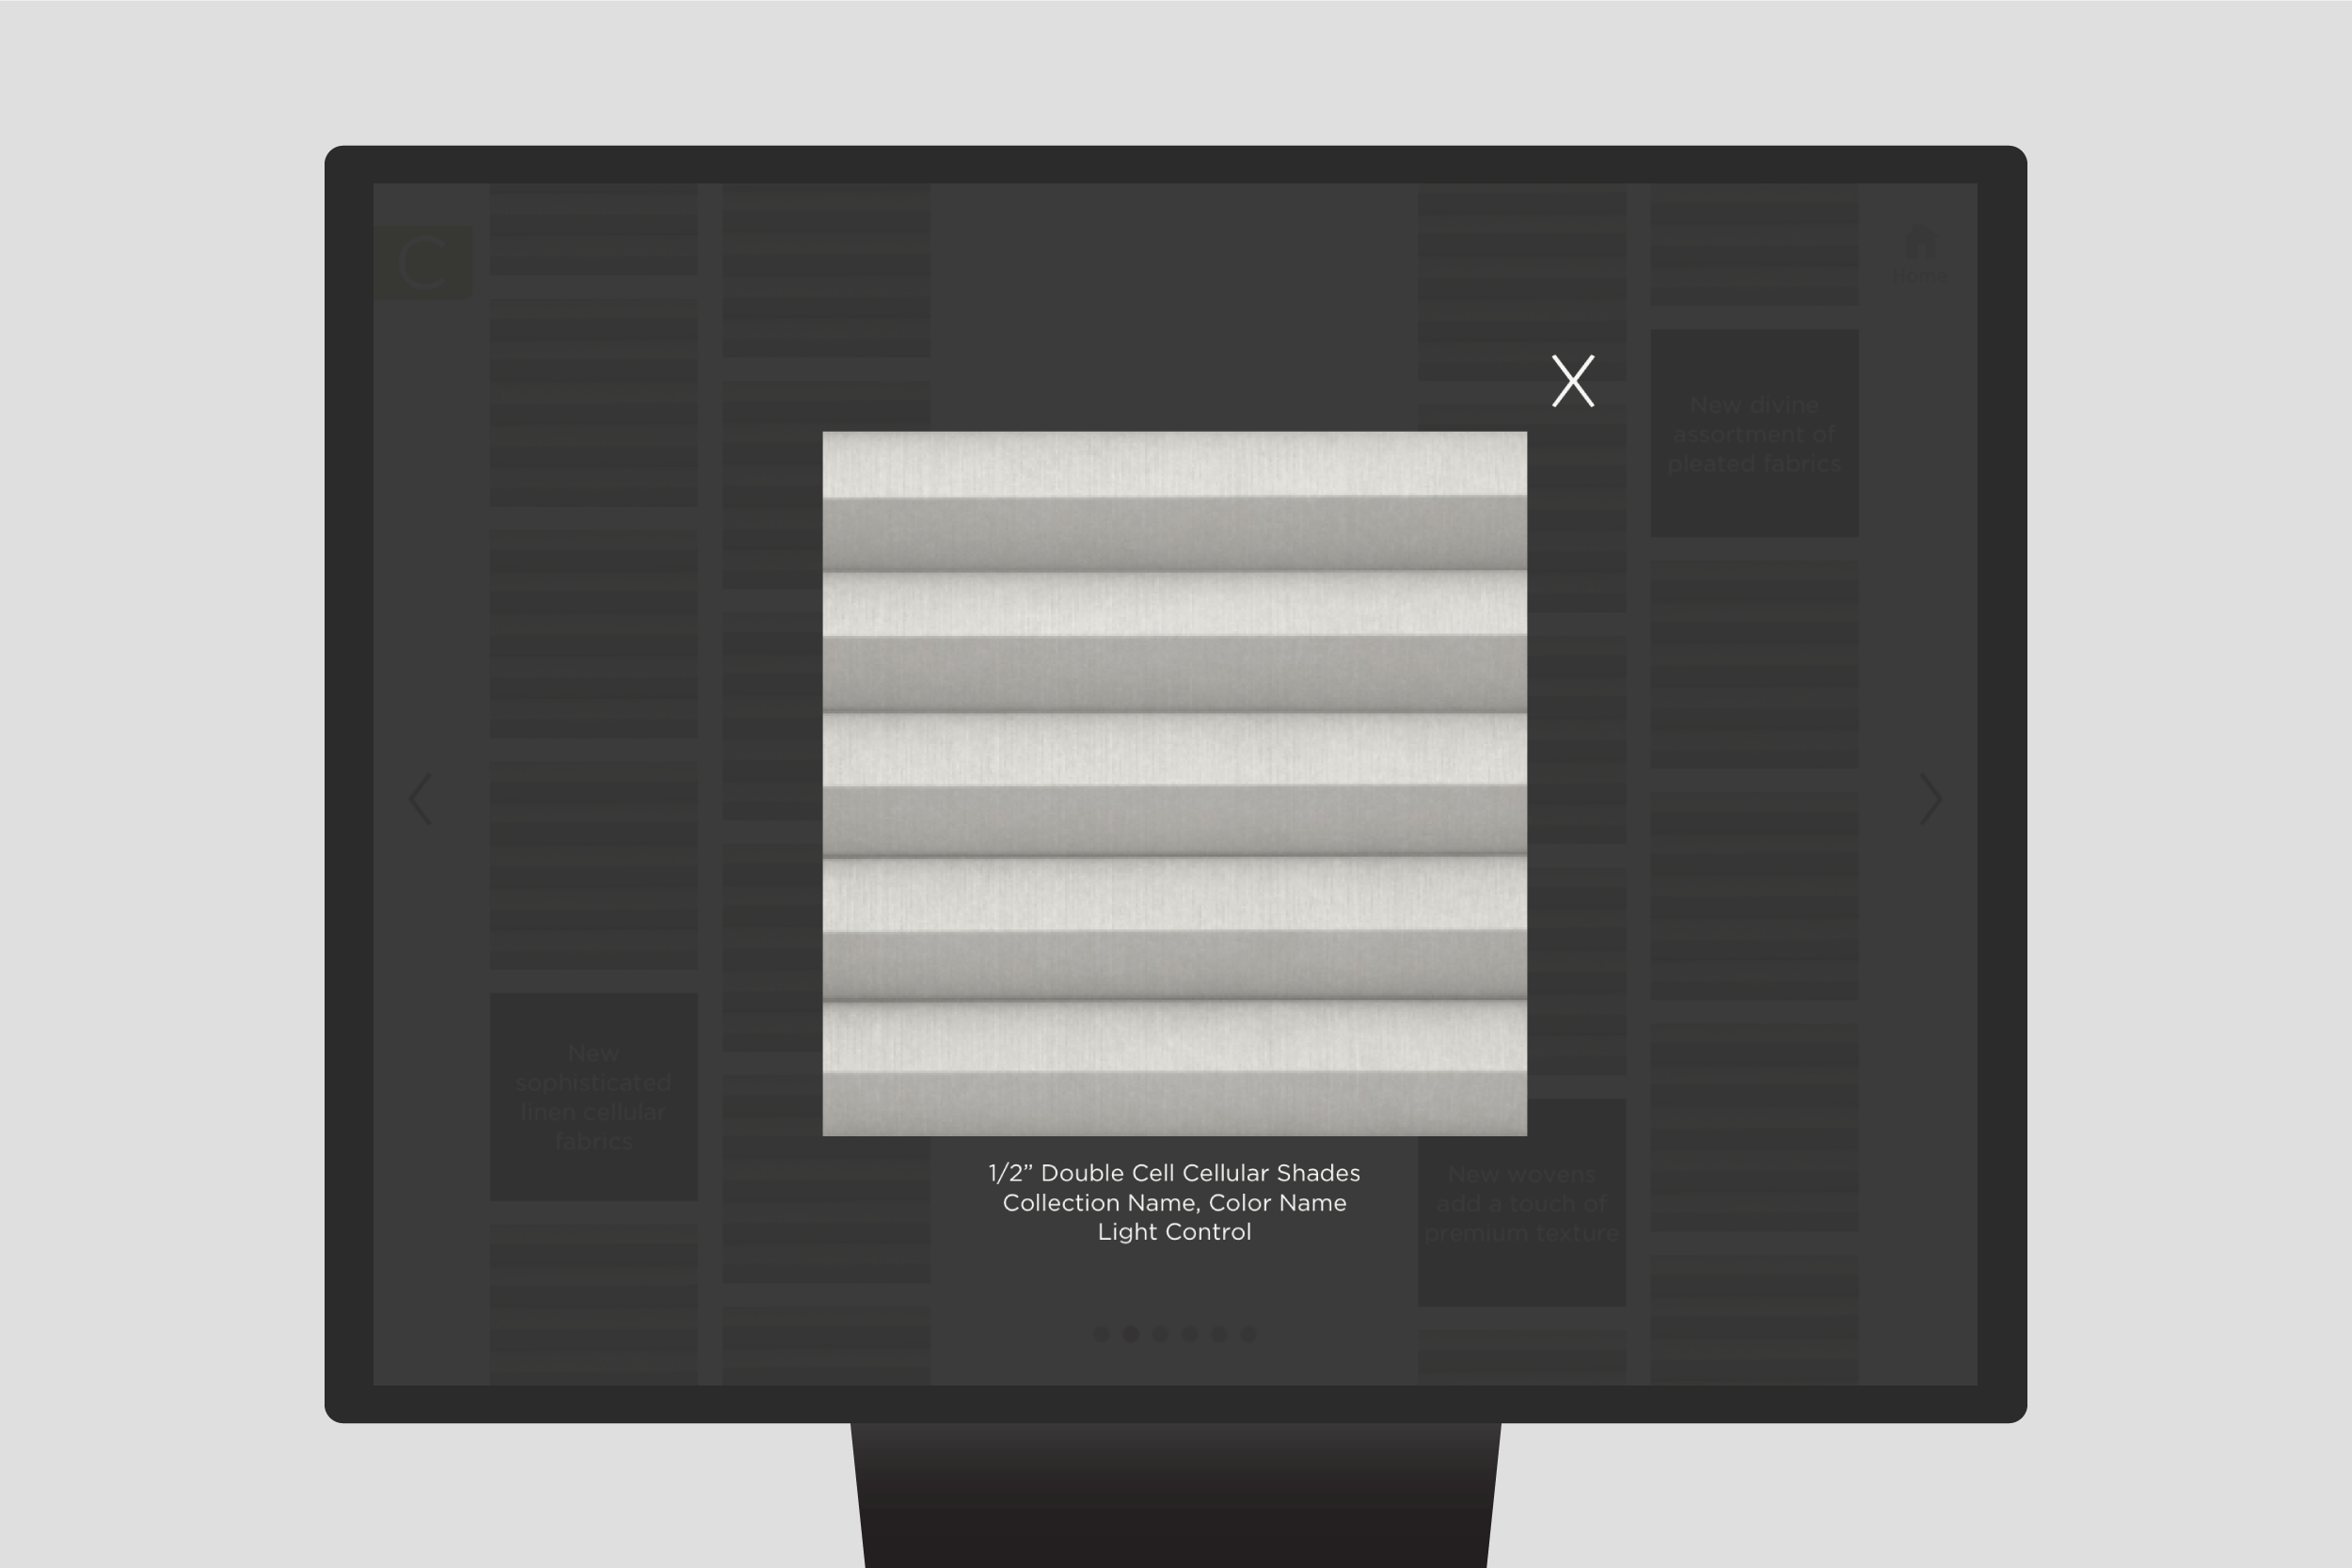 convention-kiosk-swatch-popover-jacob-berchem.png